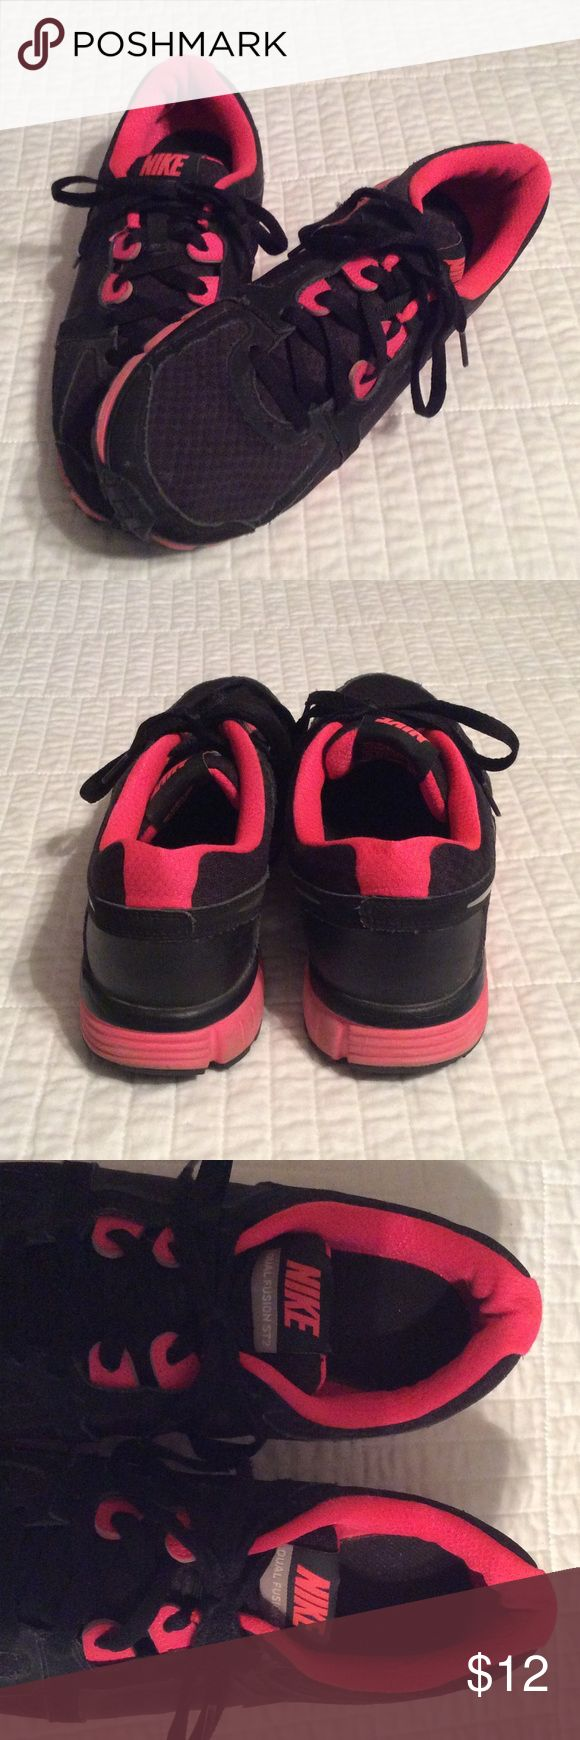 Nike Dual Fusion Athletic Shoes Nike Dual Fusion black & hot pink athletic shoes. Great condition! Nike Shoes Athletic Shoes